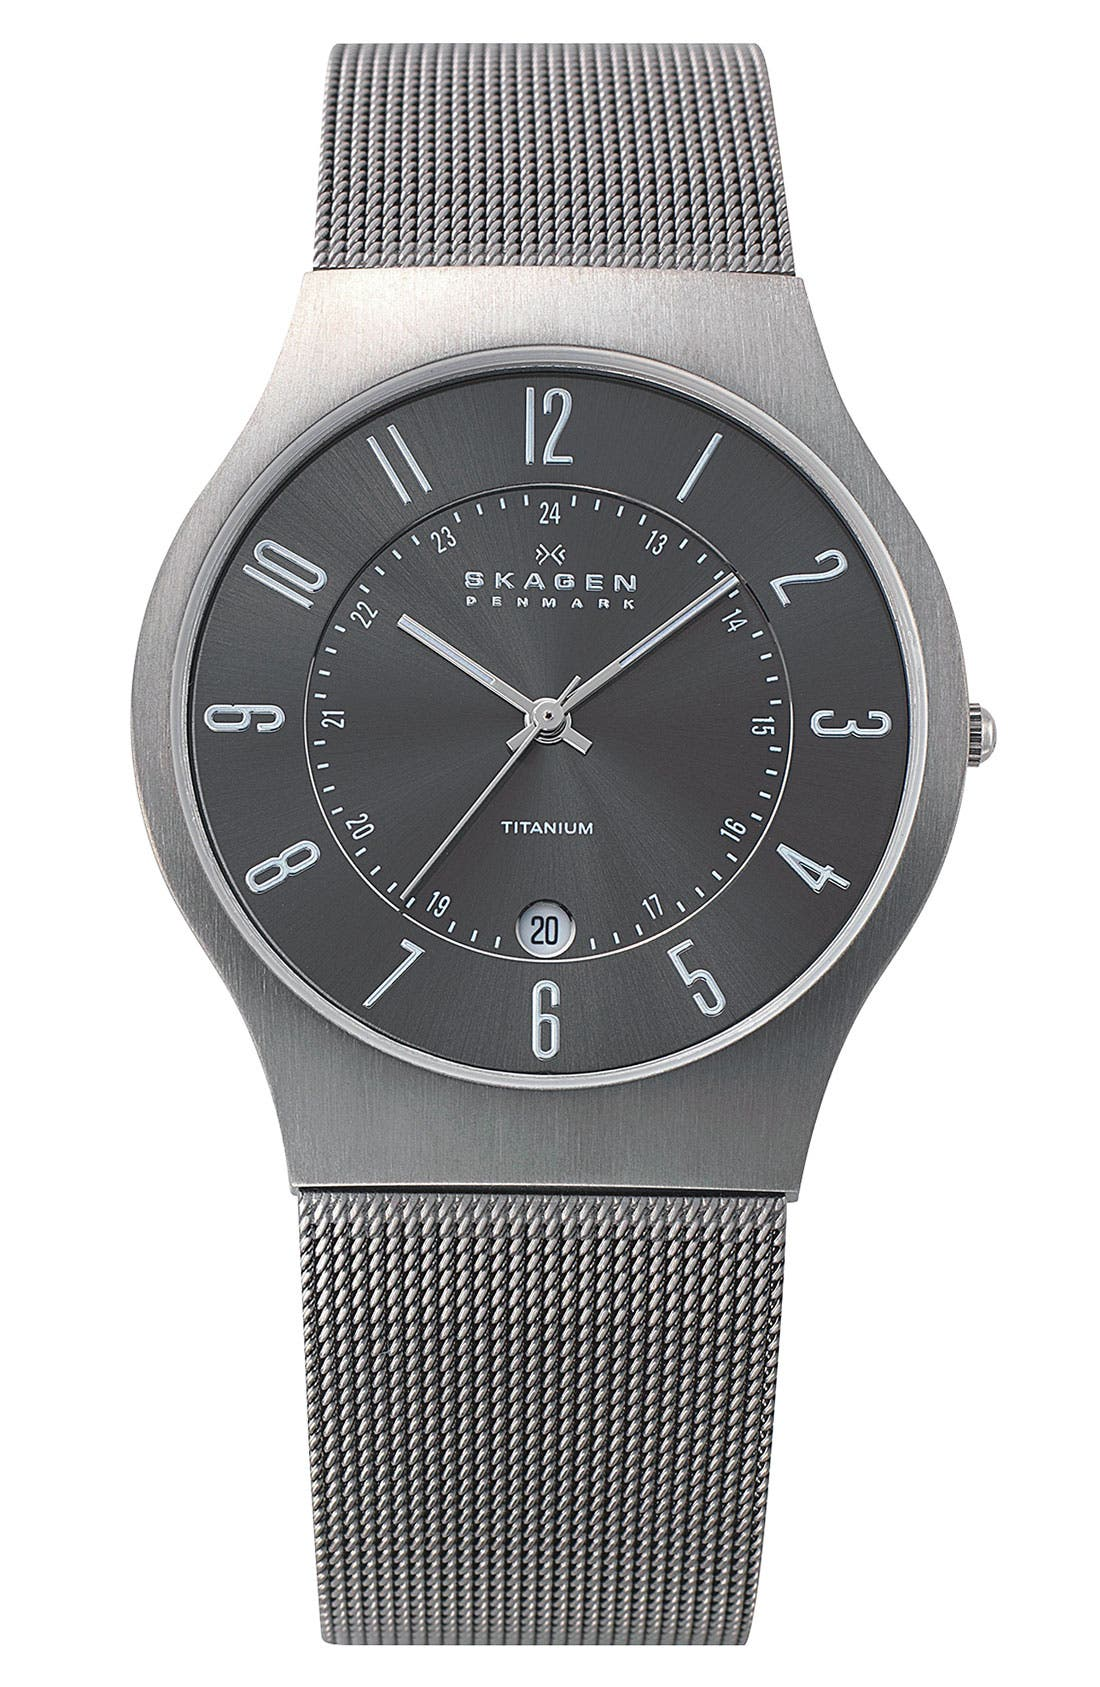 'Grenen' Titanium Case Watch,                             Main thumbnail 9, color,